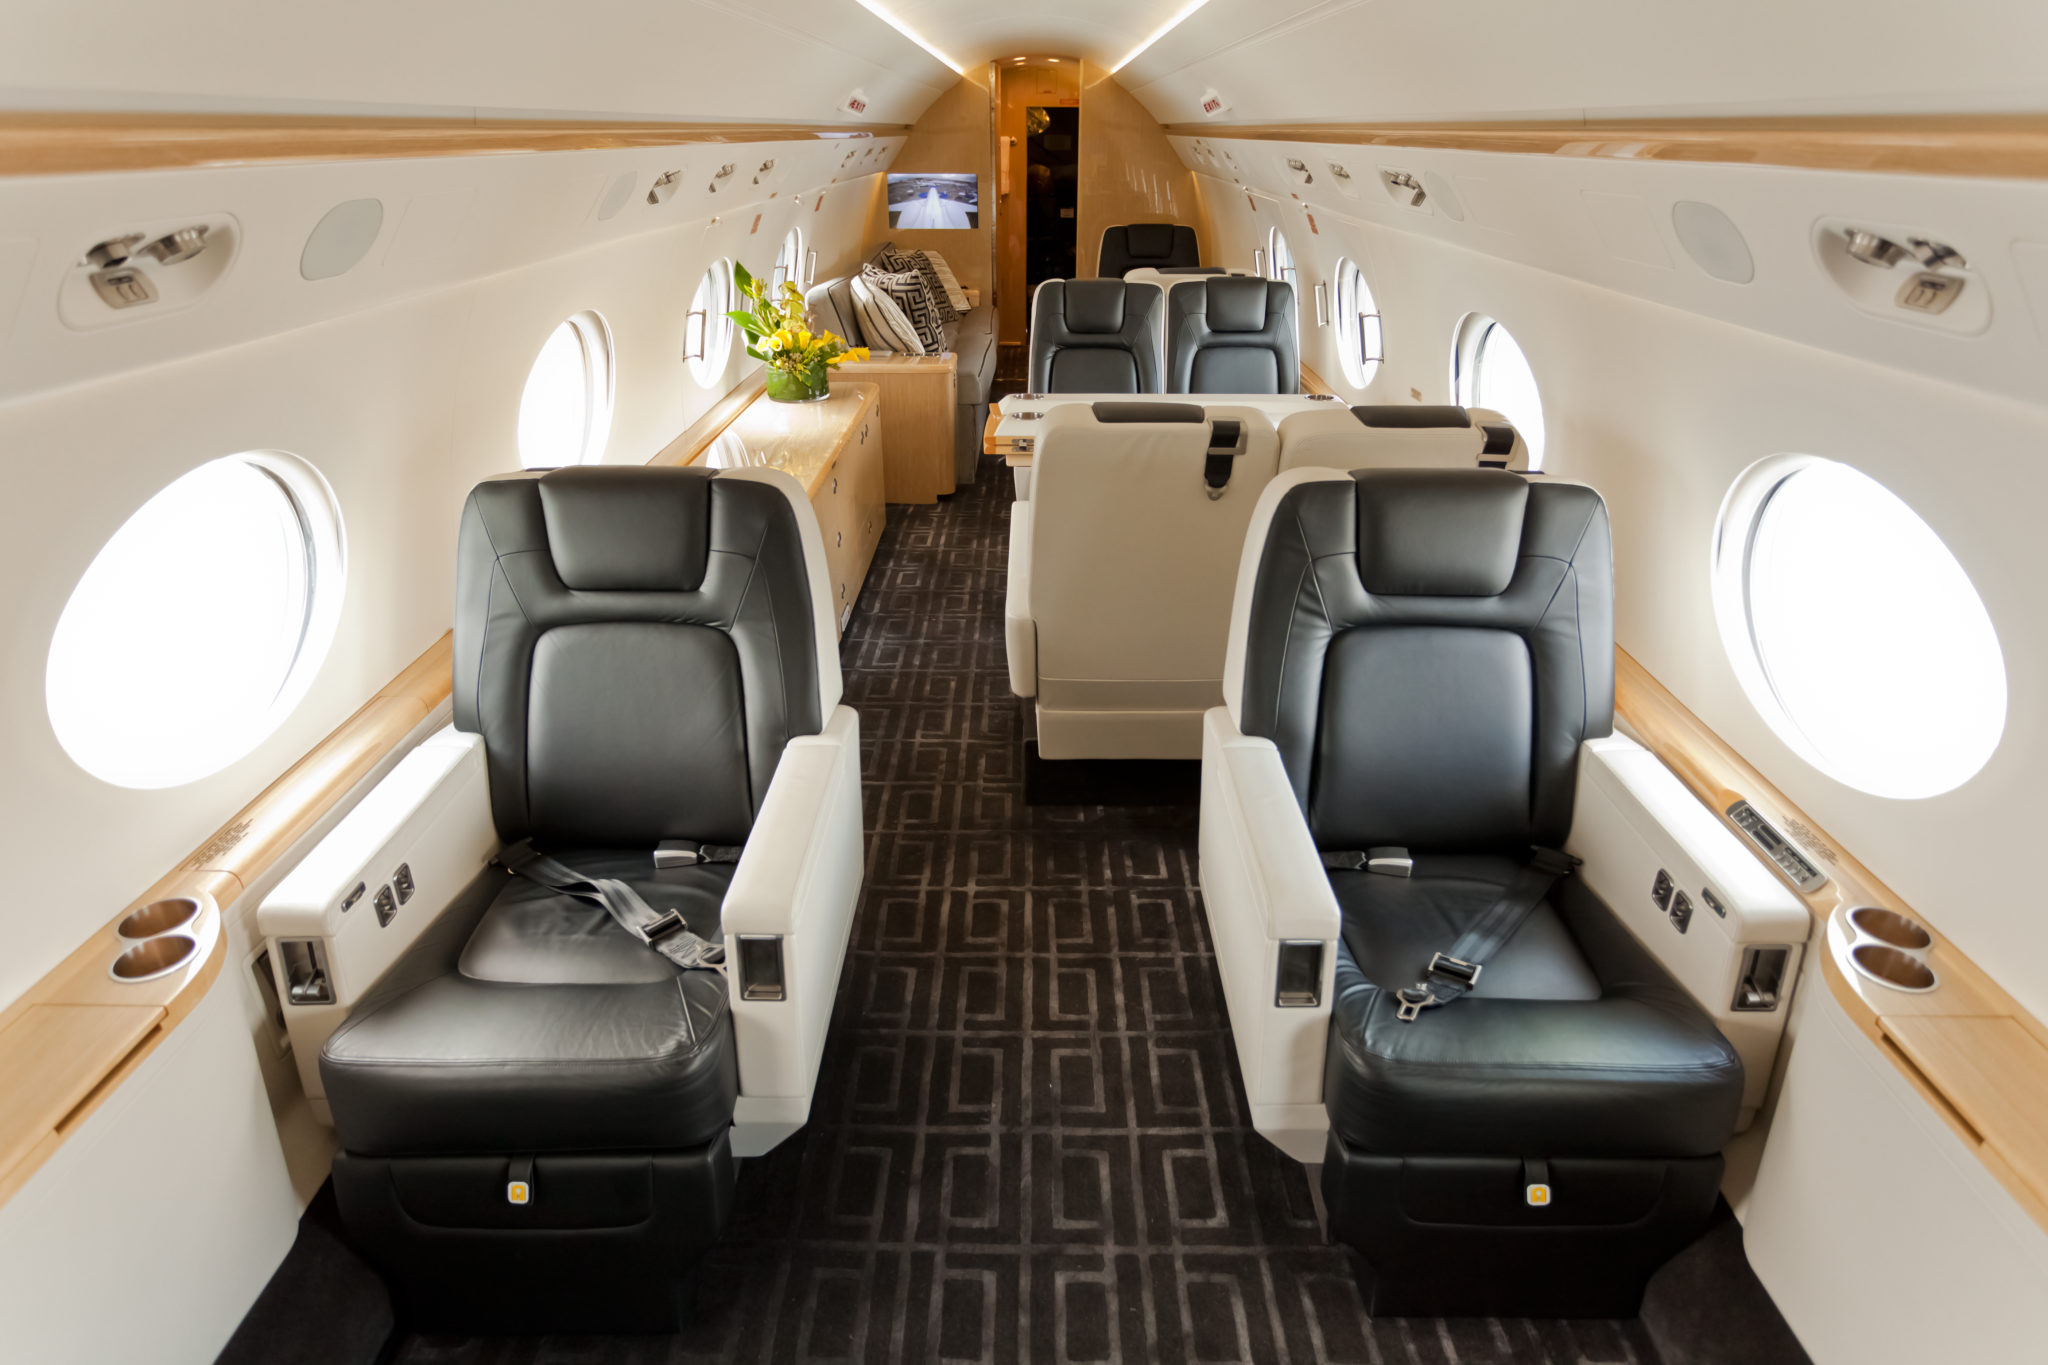 West Coast Americans trend on the young side of the scale in age and often share pictures of their experience on social media outlets. Image: PrivateFly